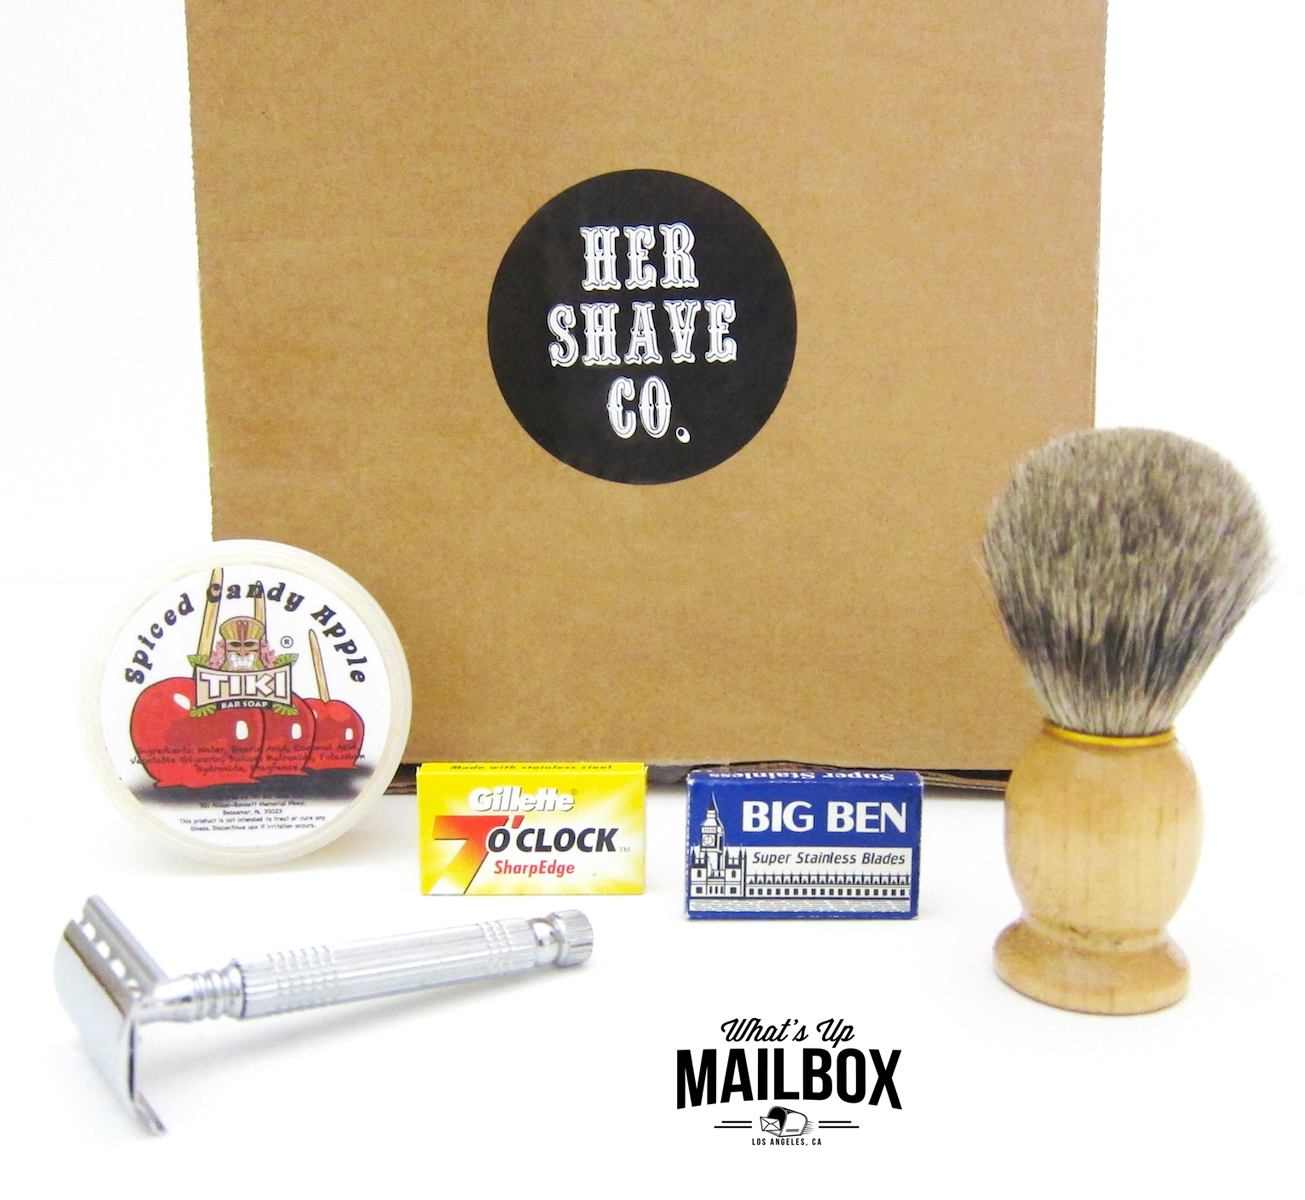 Her Shave Co. First Box Items!